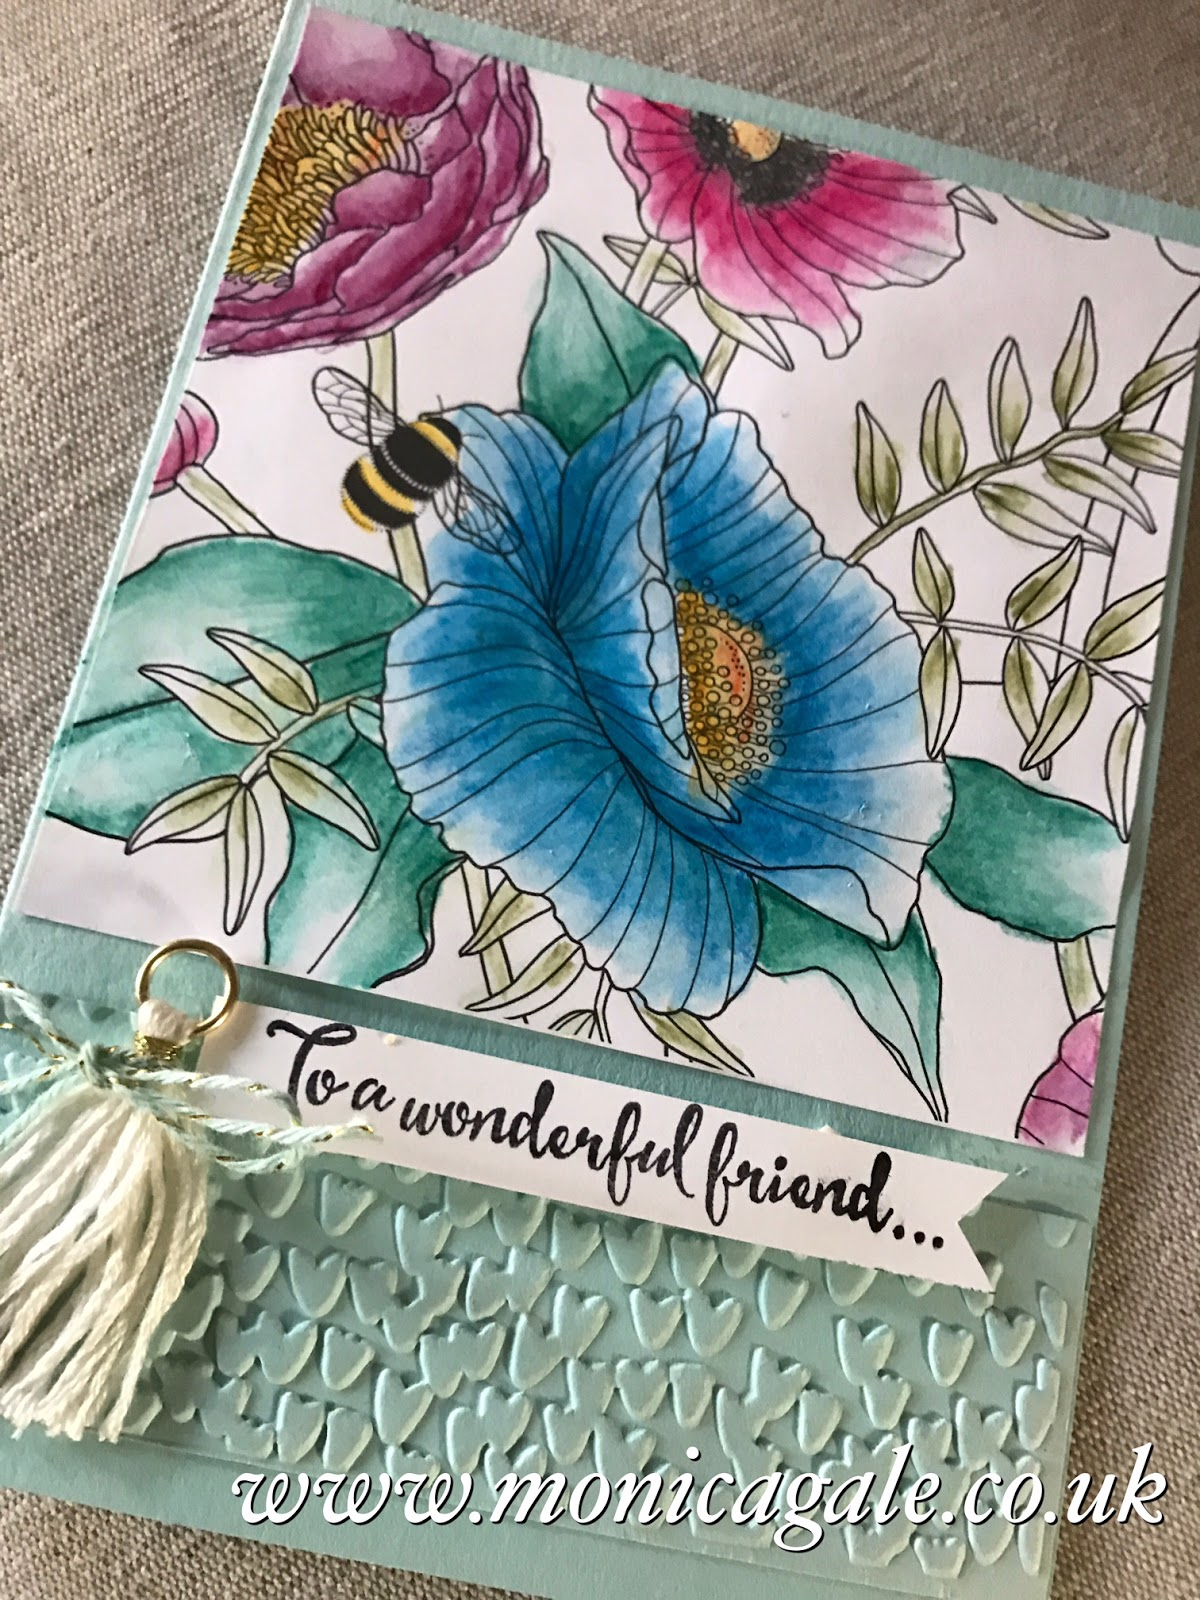 monica gale top stampin up uk demonstrator inside the lines online shop from now until the 31st of you could choose a pack of these papers absolutely there are 12 sheets 3 each of four designs and